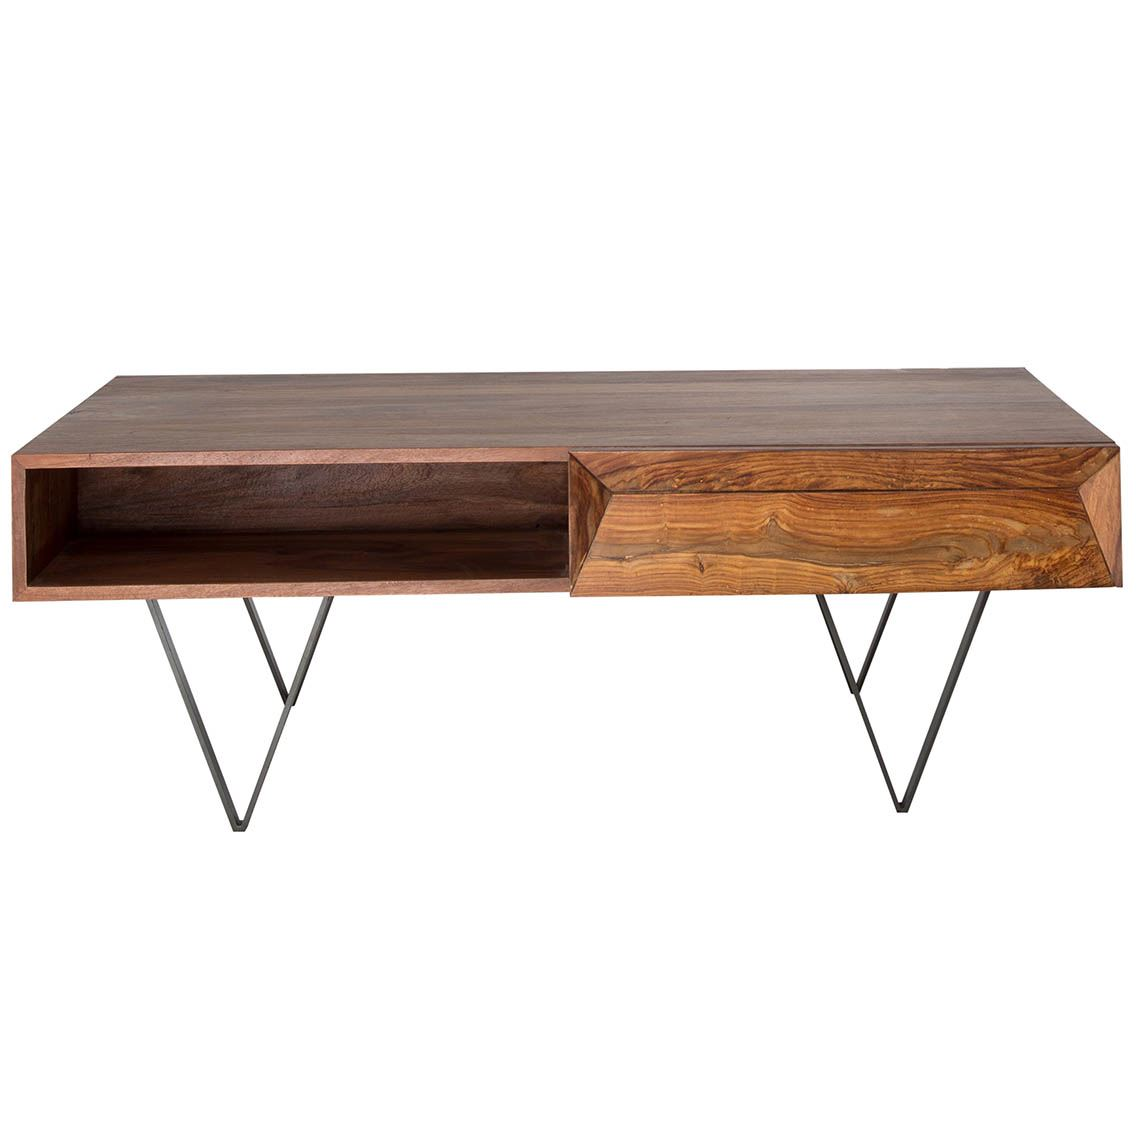 Wyatt Coffee Table Size W 60cm x D 115cm x H 40cm in Natural Sheesham Wood/Mdf/Steel Freedom by Freedom, a Coffee Table for sale on Style Sourcebook